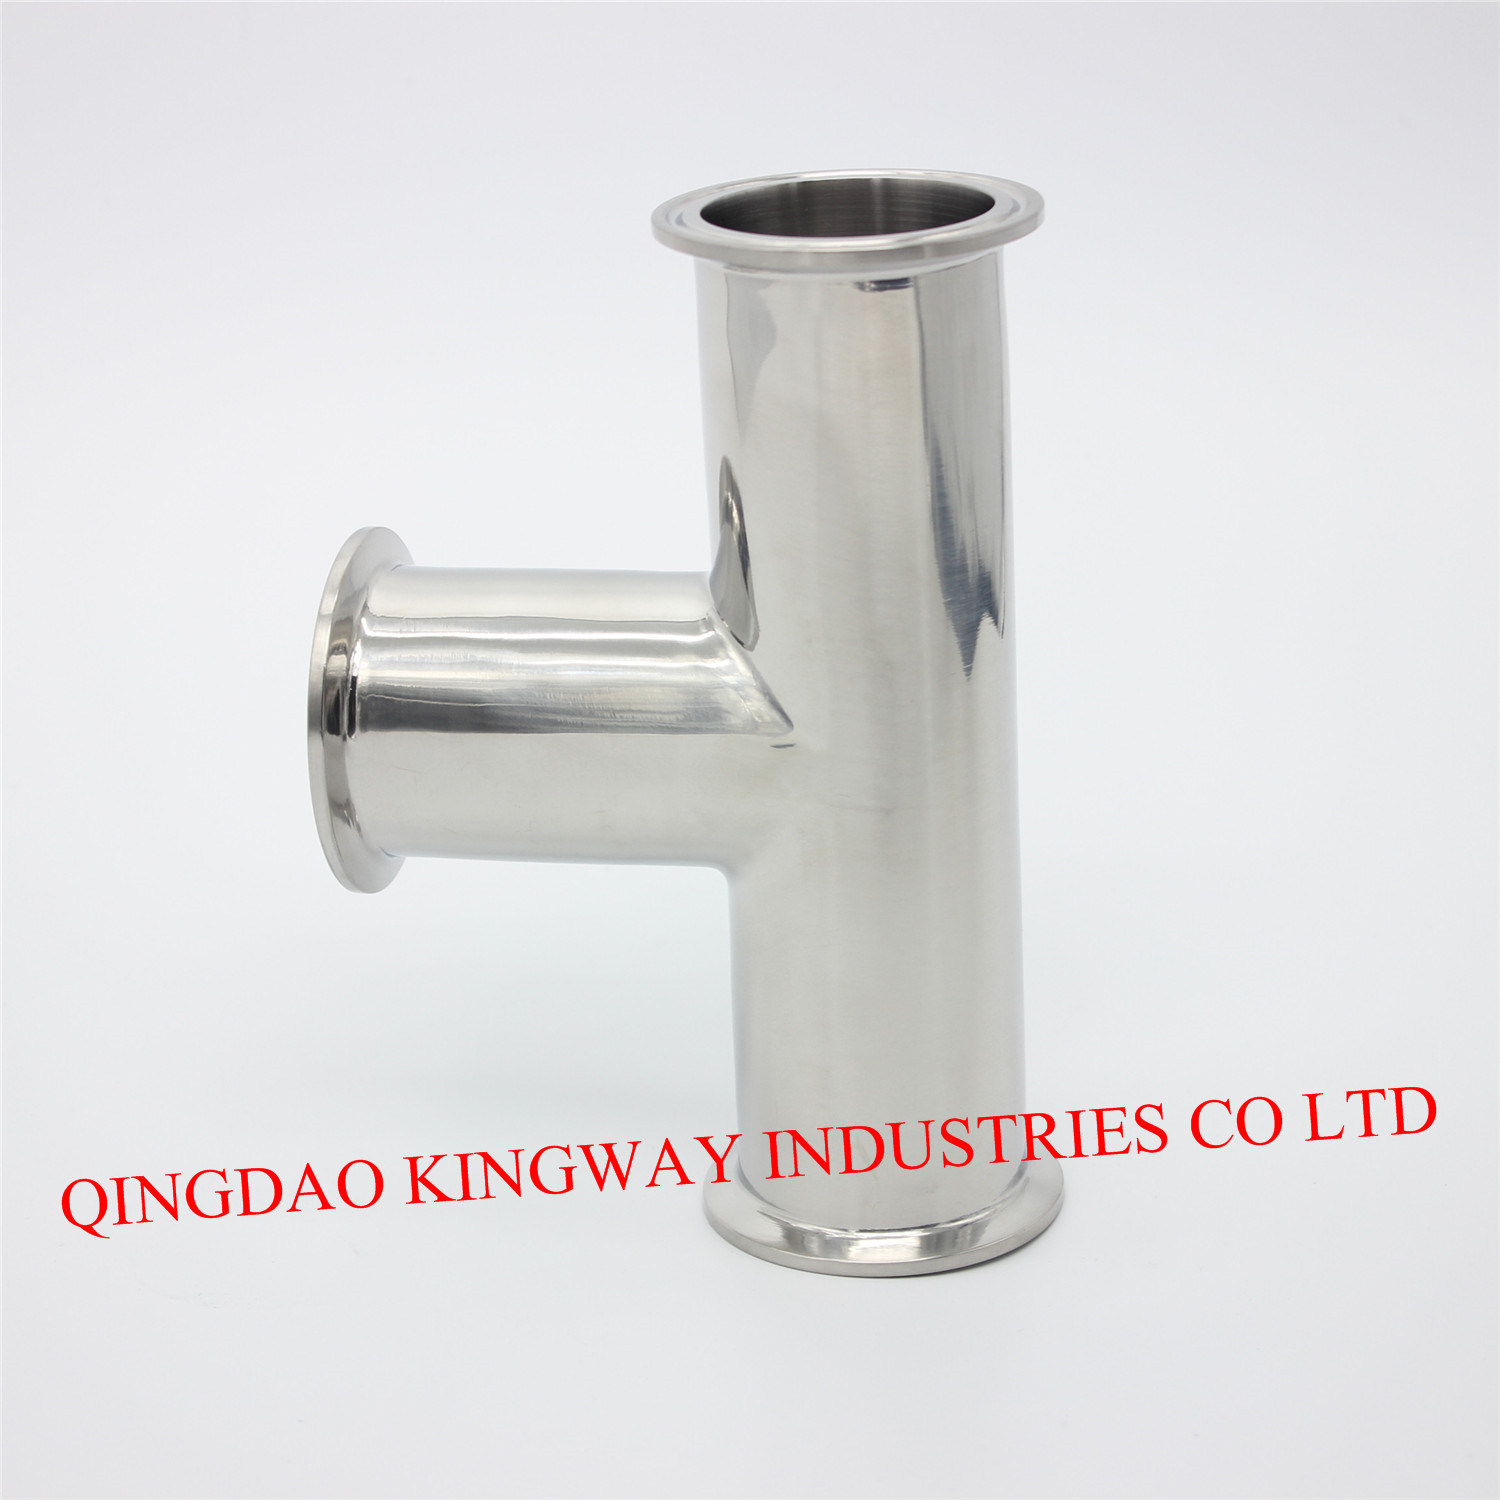 Stainless Steel Sanitary DIN Clamp Tee